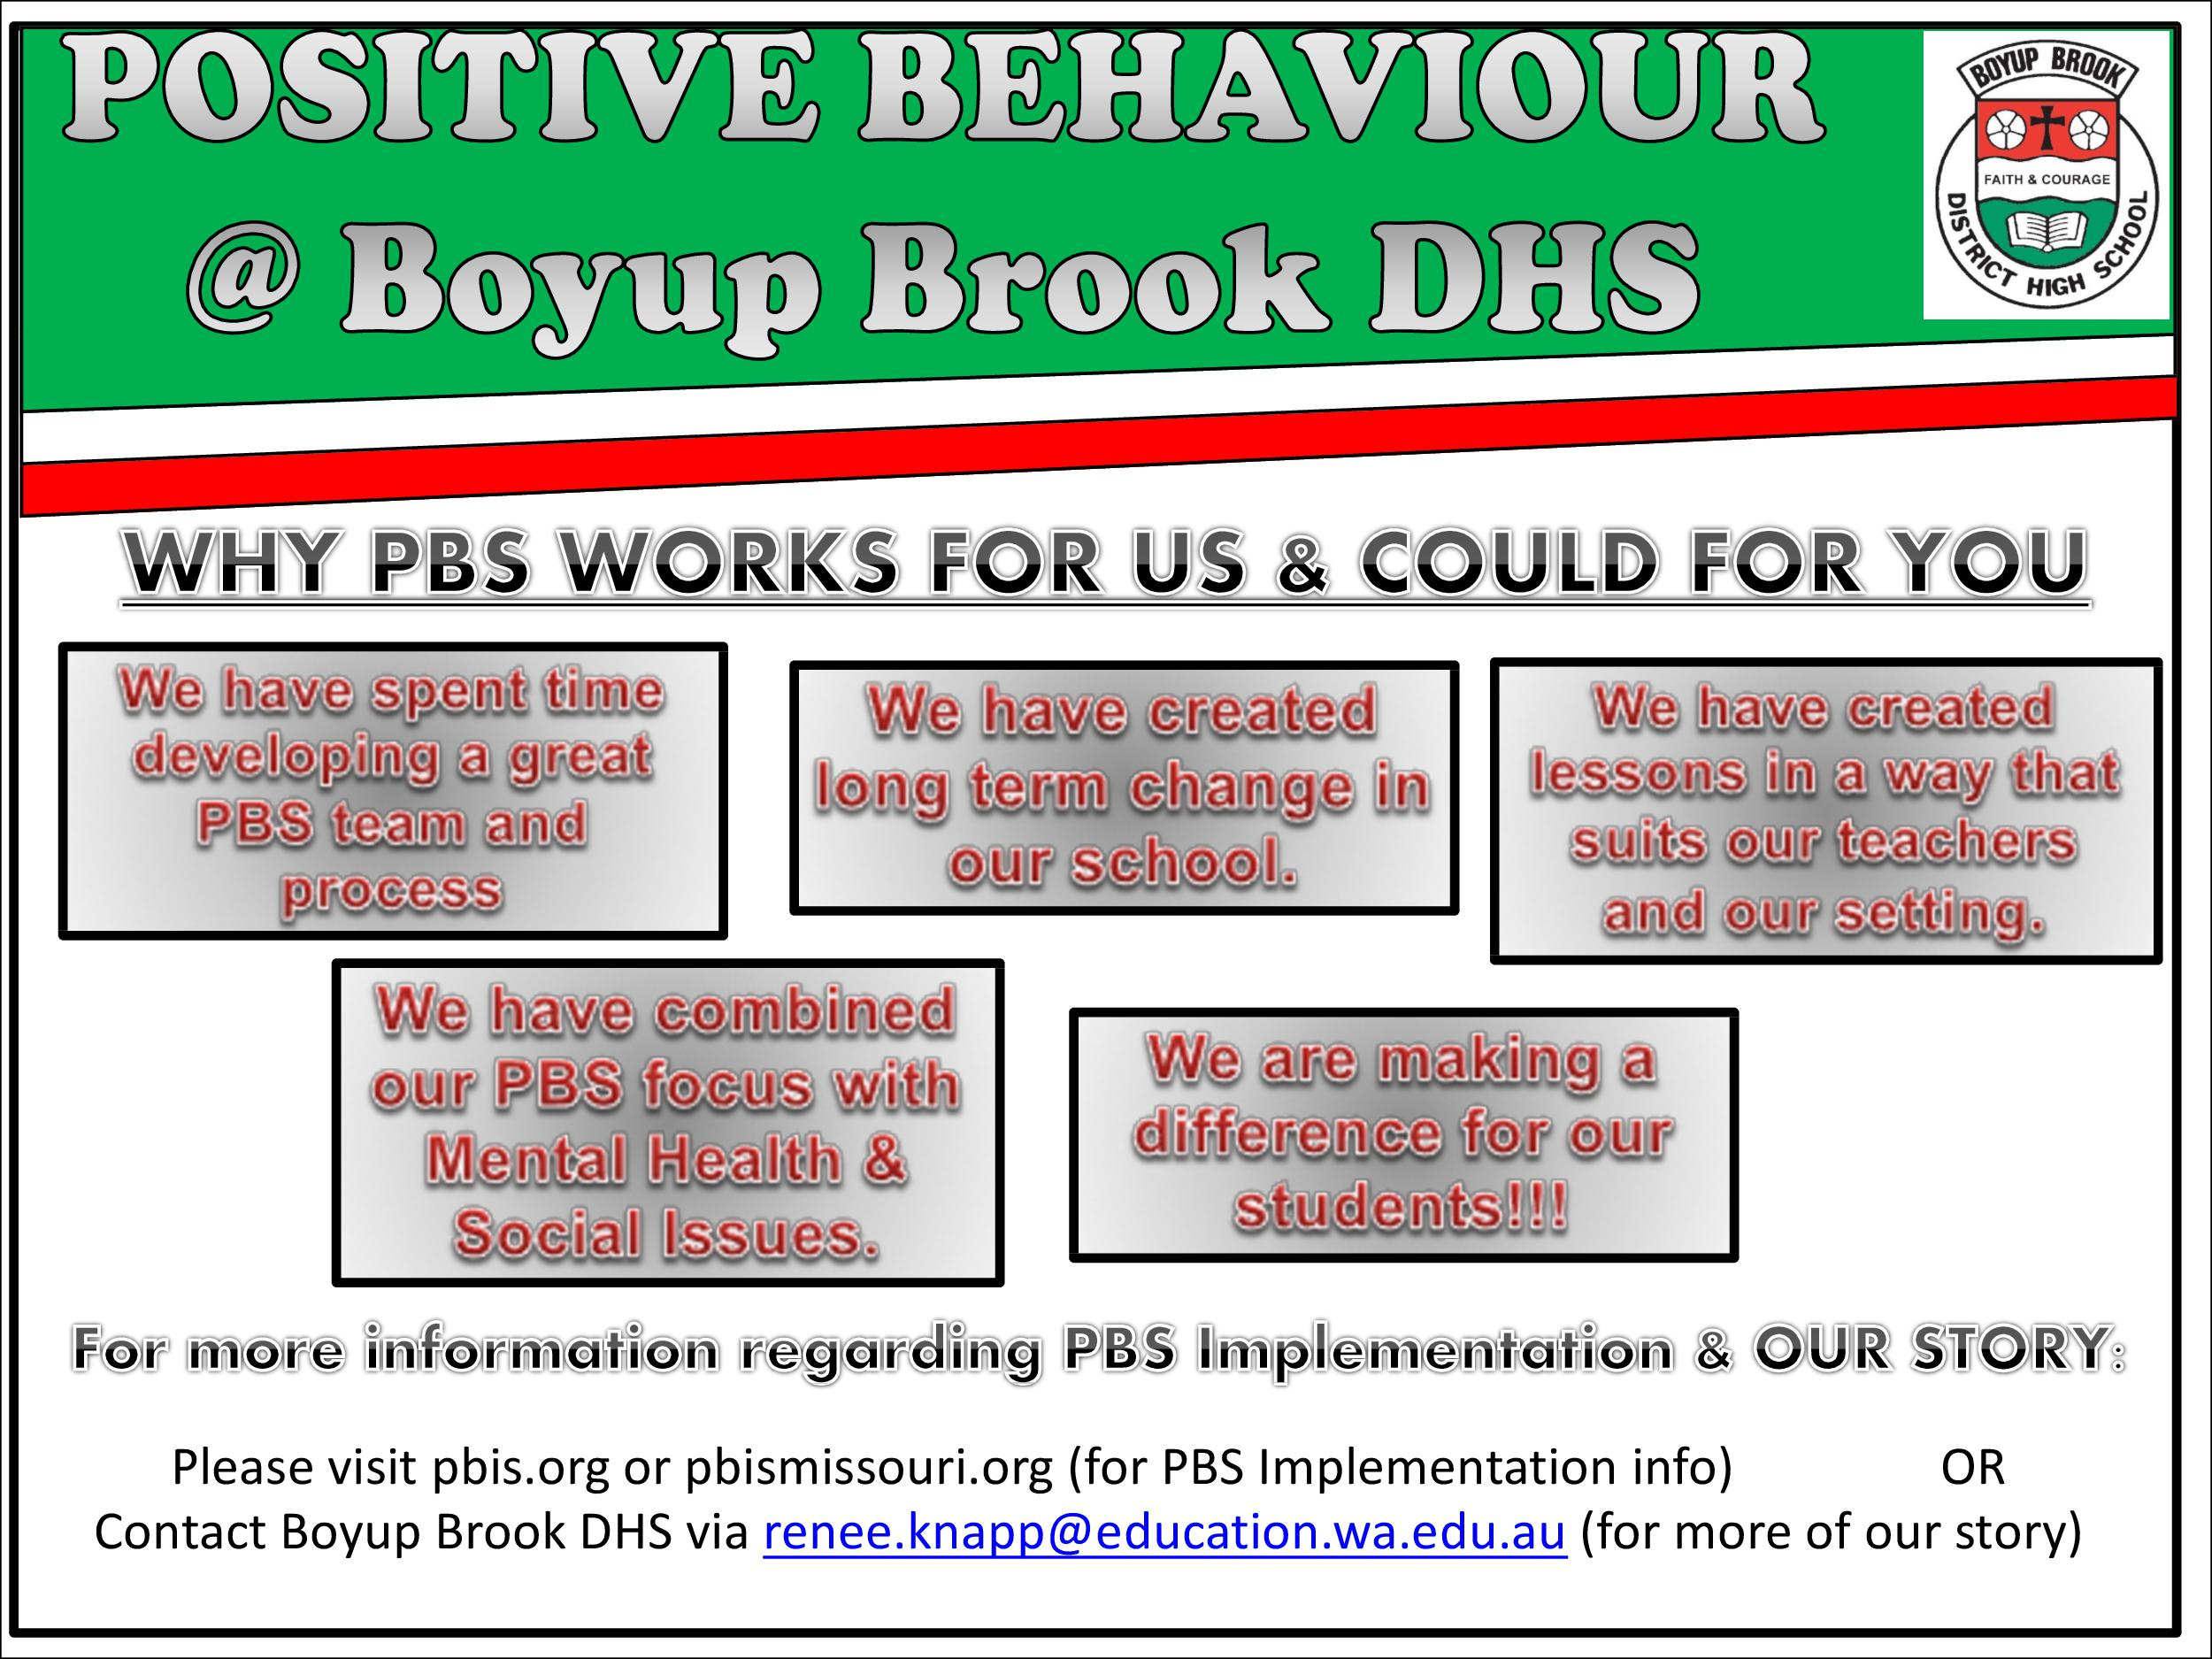 Positive Behaviour Support Page 20